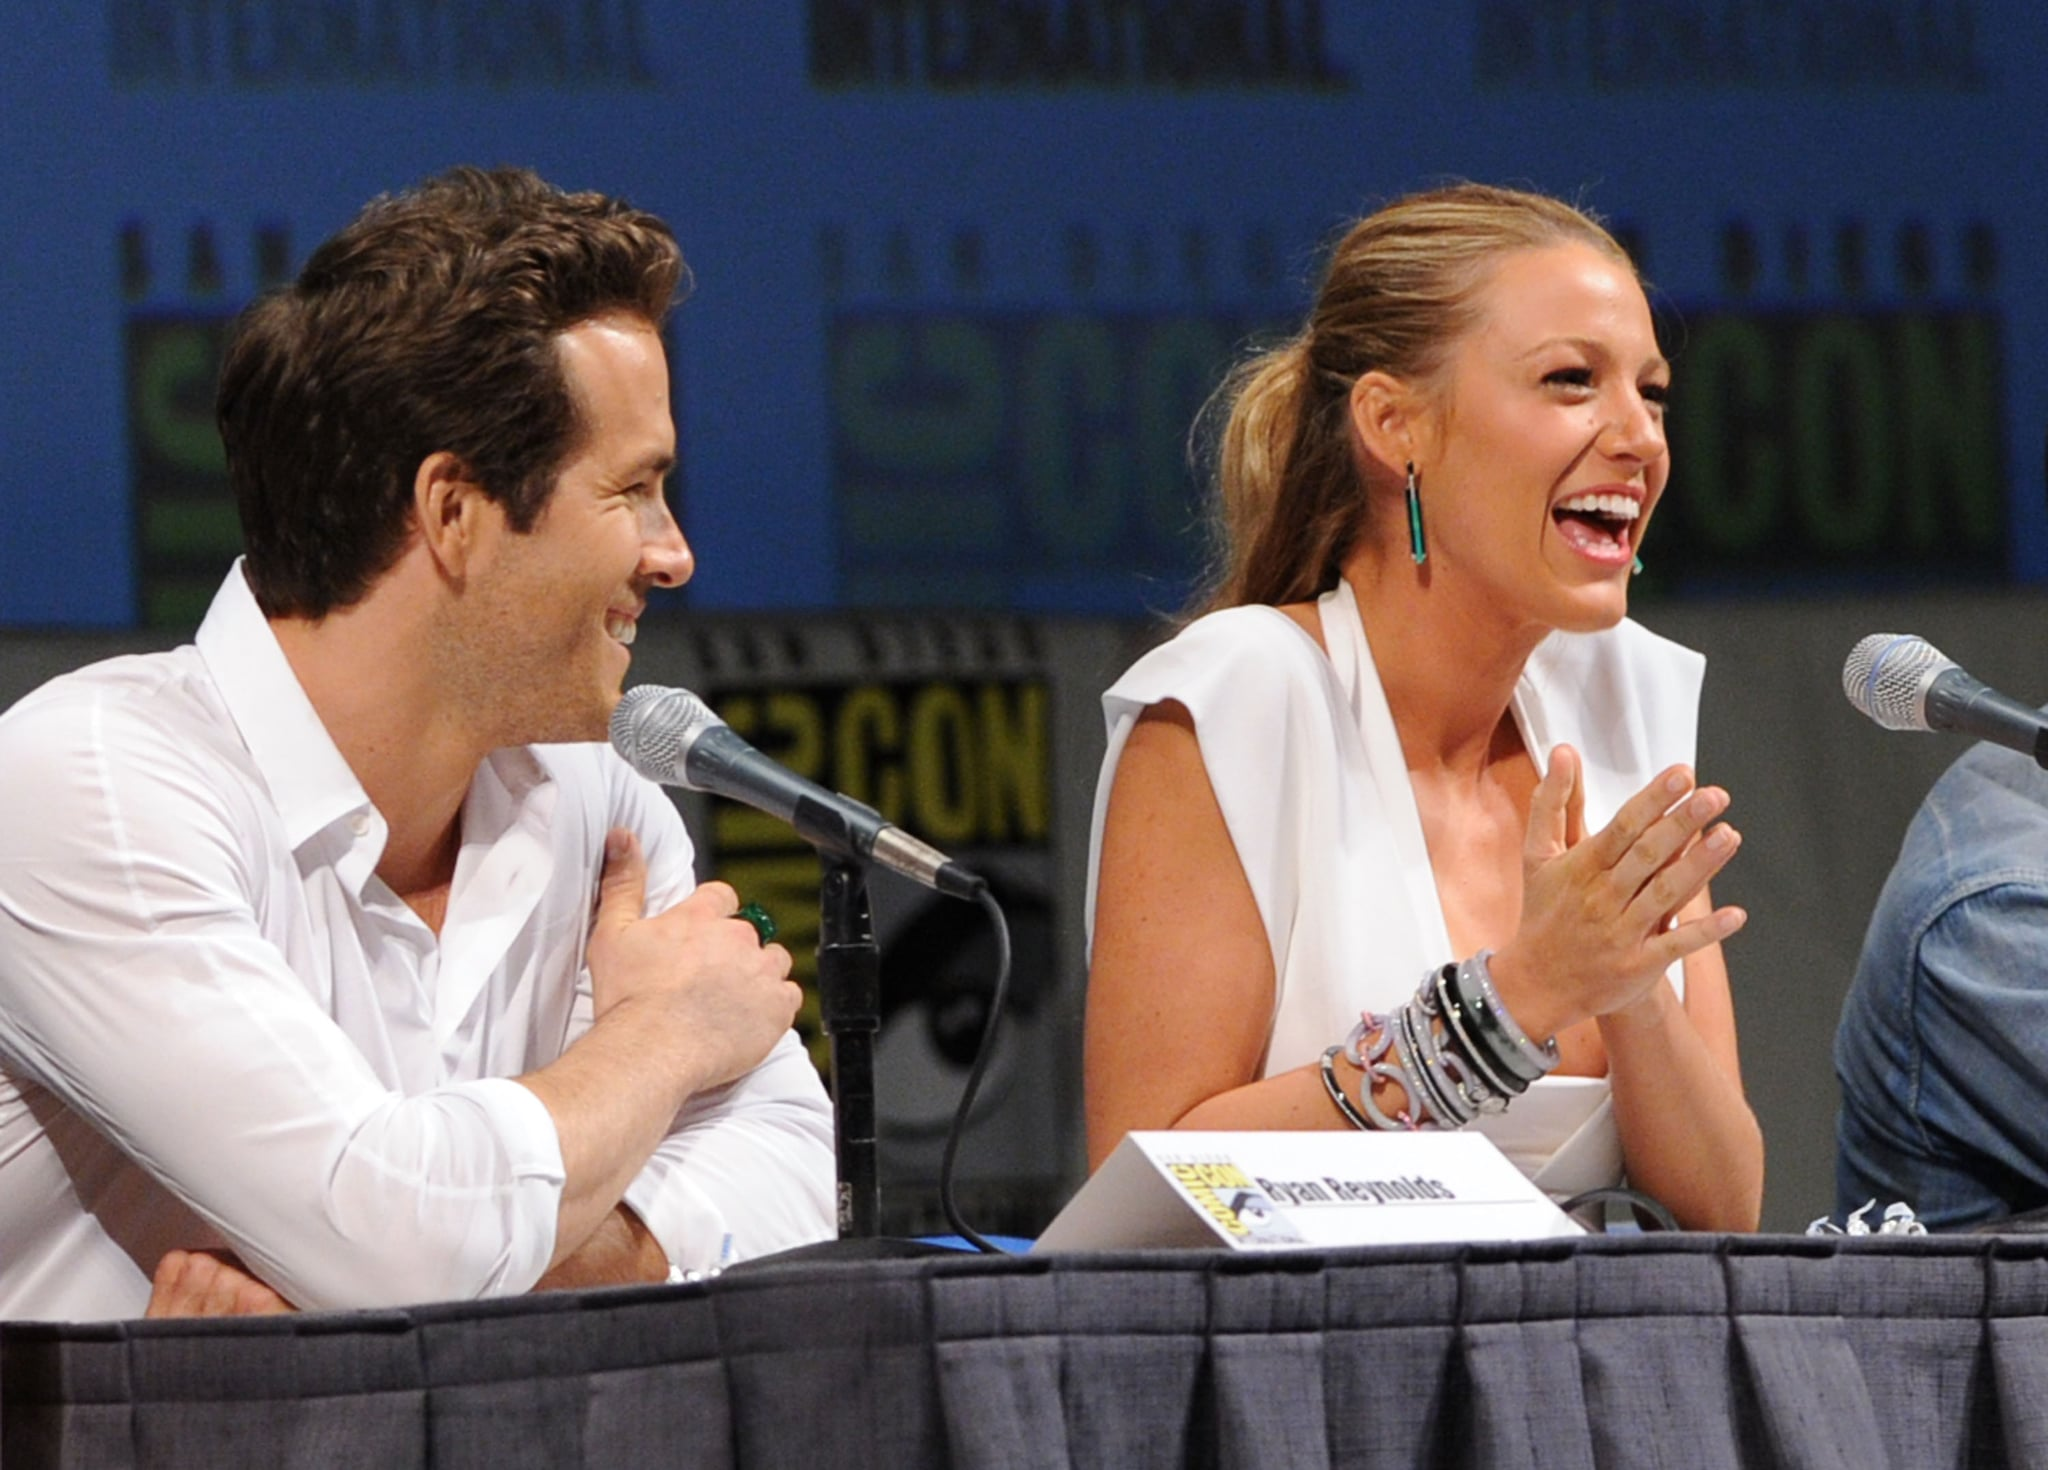 They weren't married yet, but Ryan Reynolds and Blake Lively showed tons of chemistry while promoting Green Lantern together in 2010.